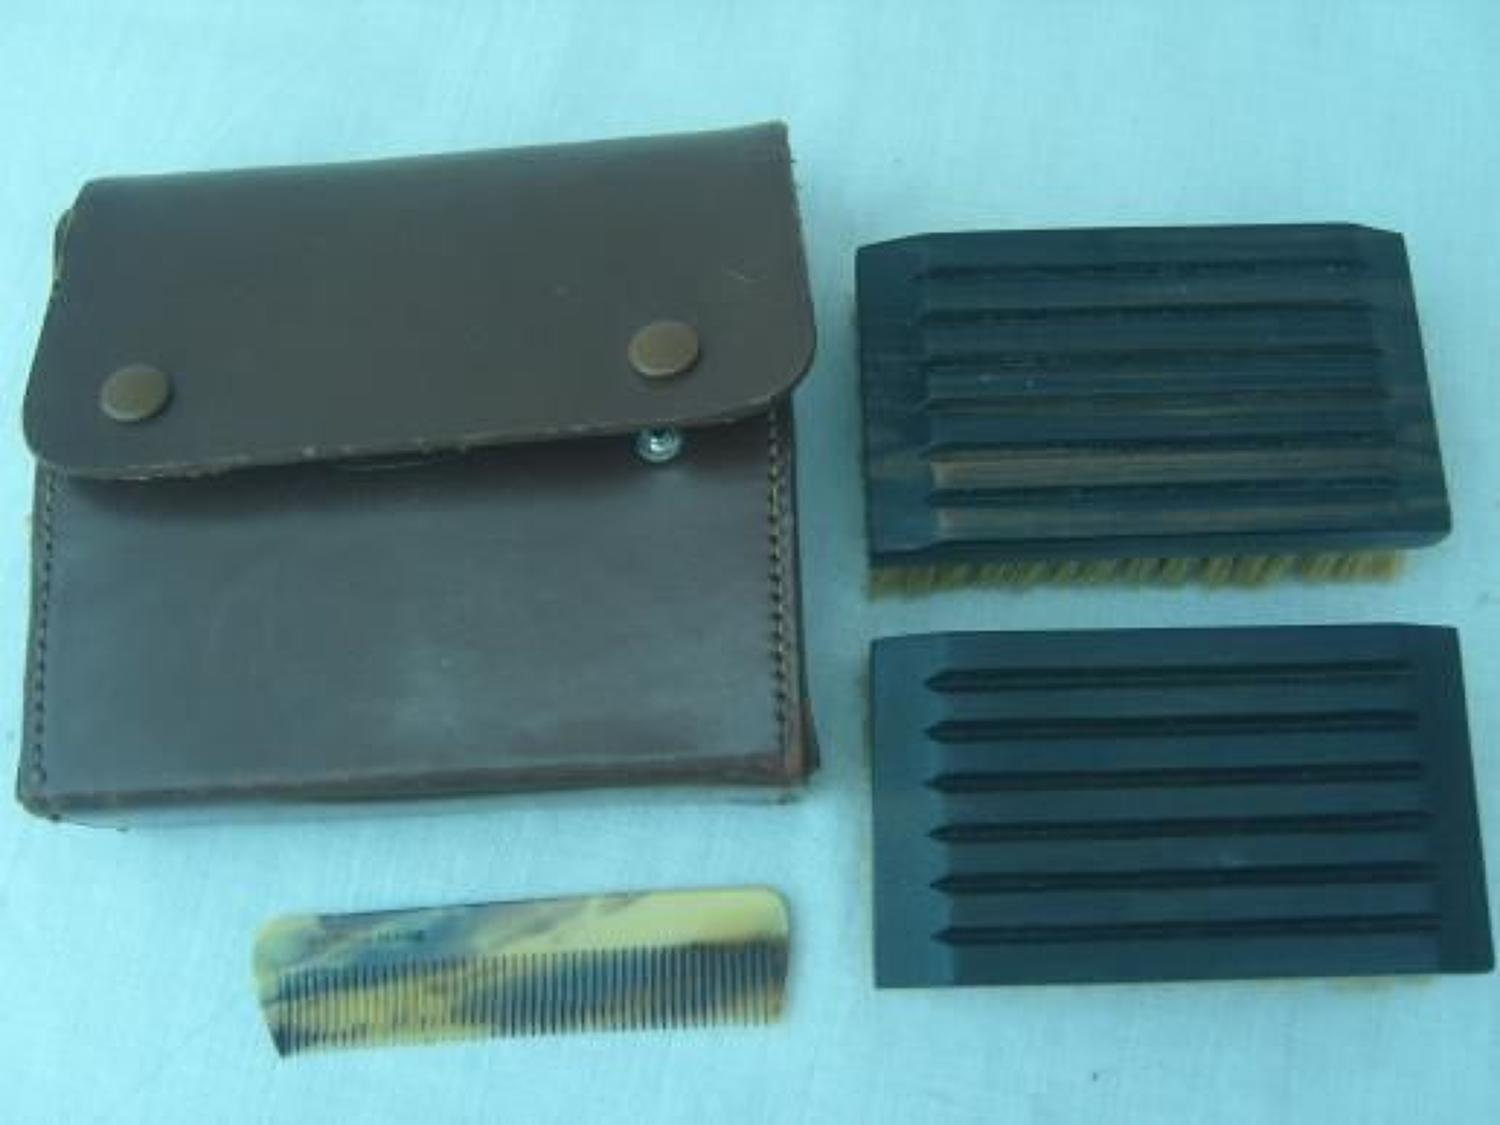 WW1 British Army Officers Brushes & Comb unused.